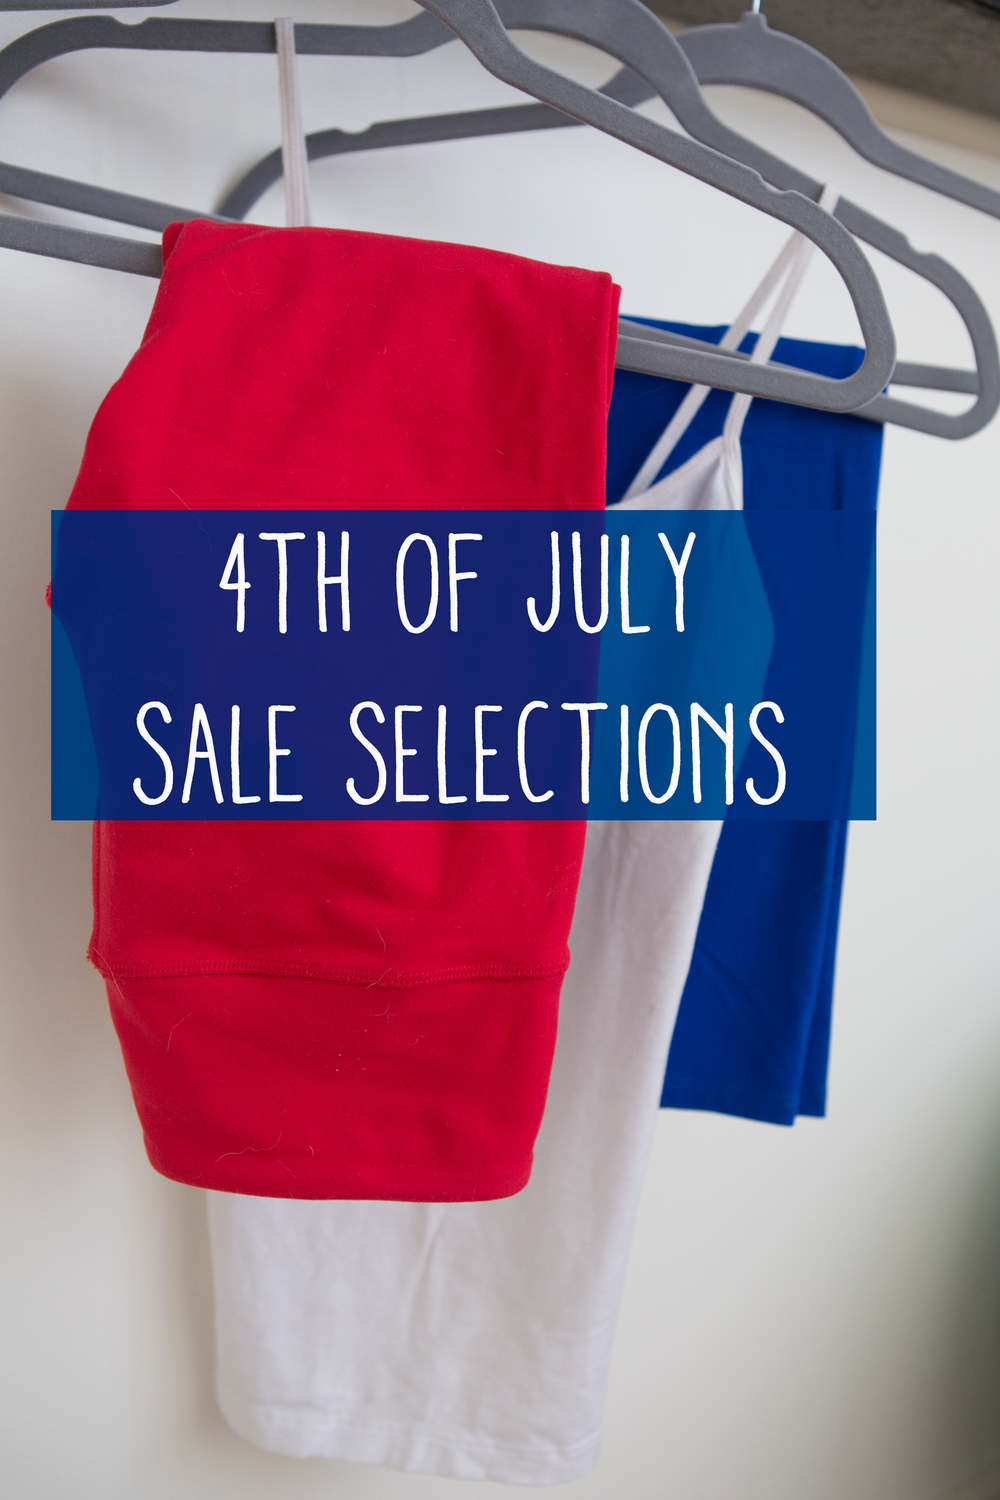 Sale selections - time to shop!